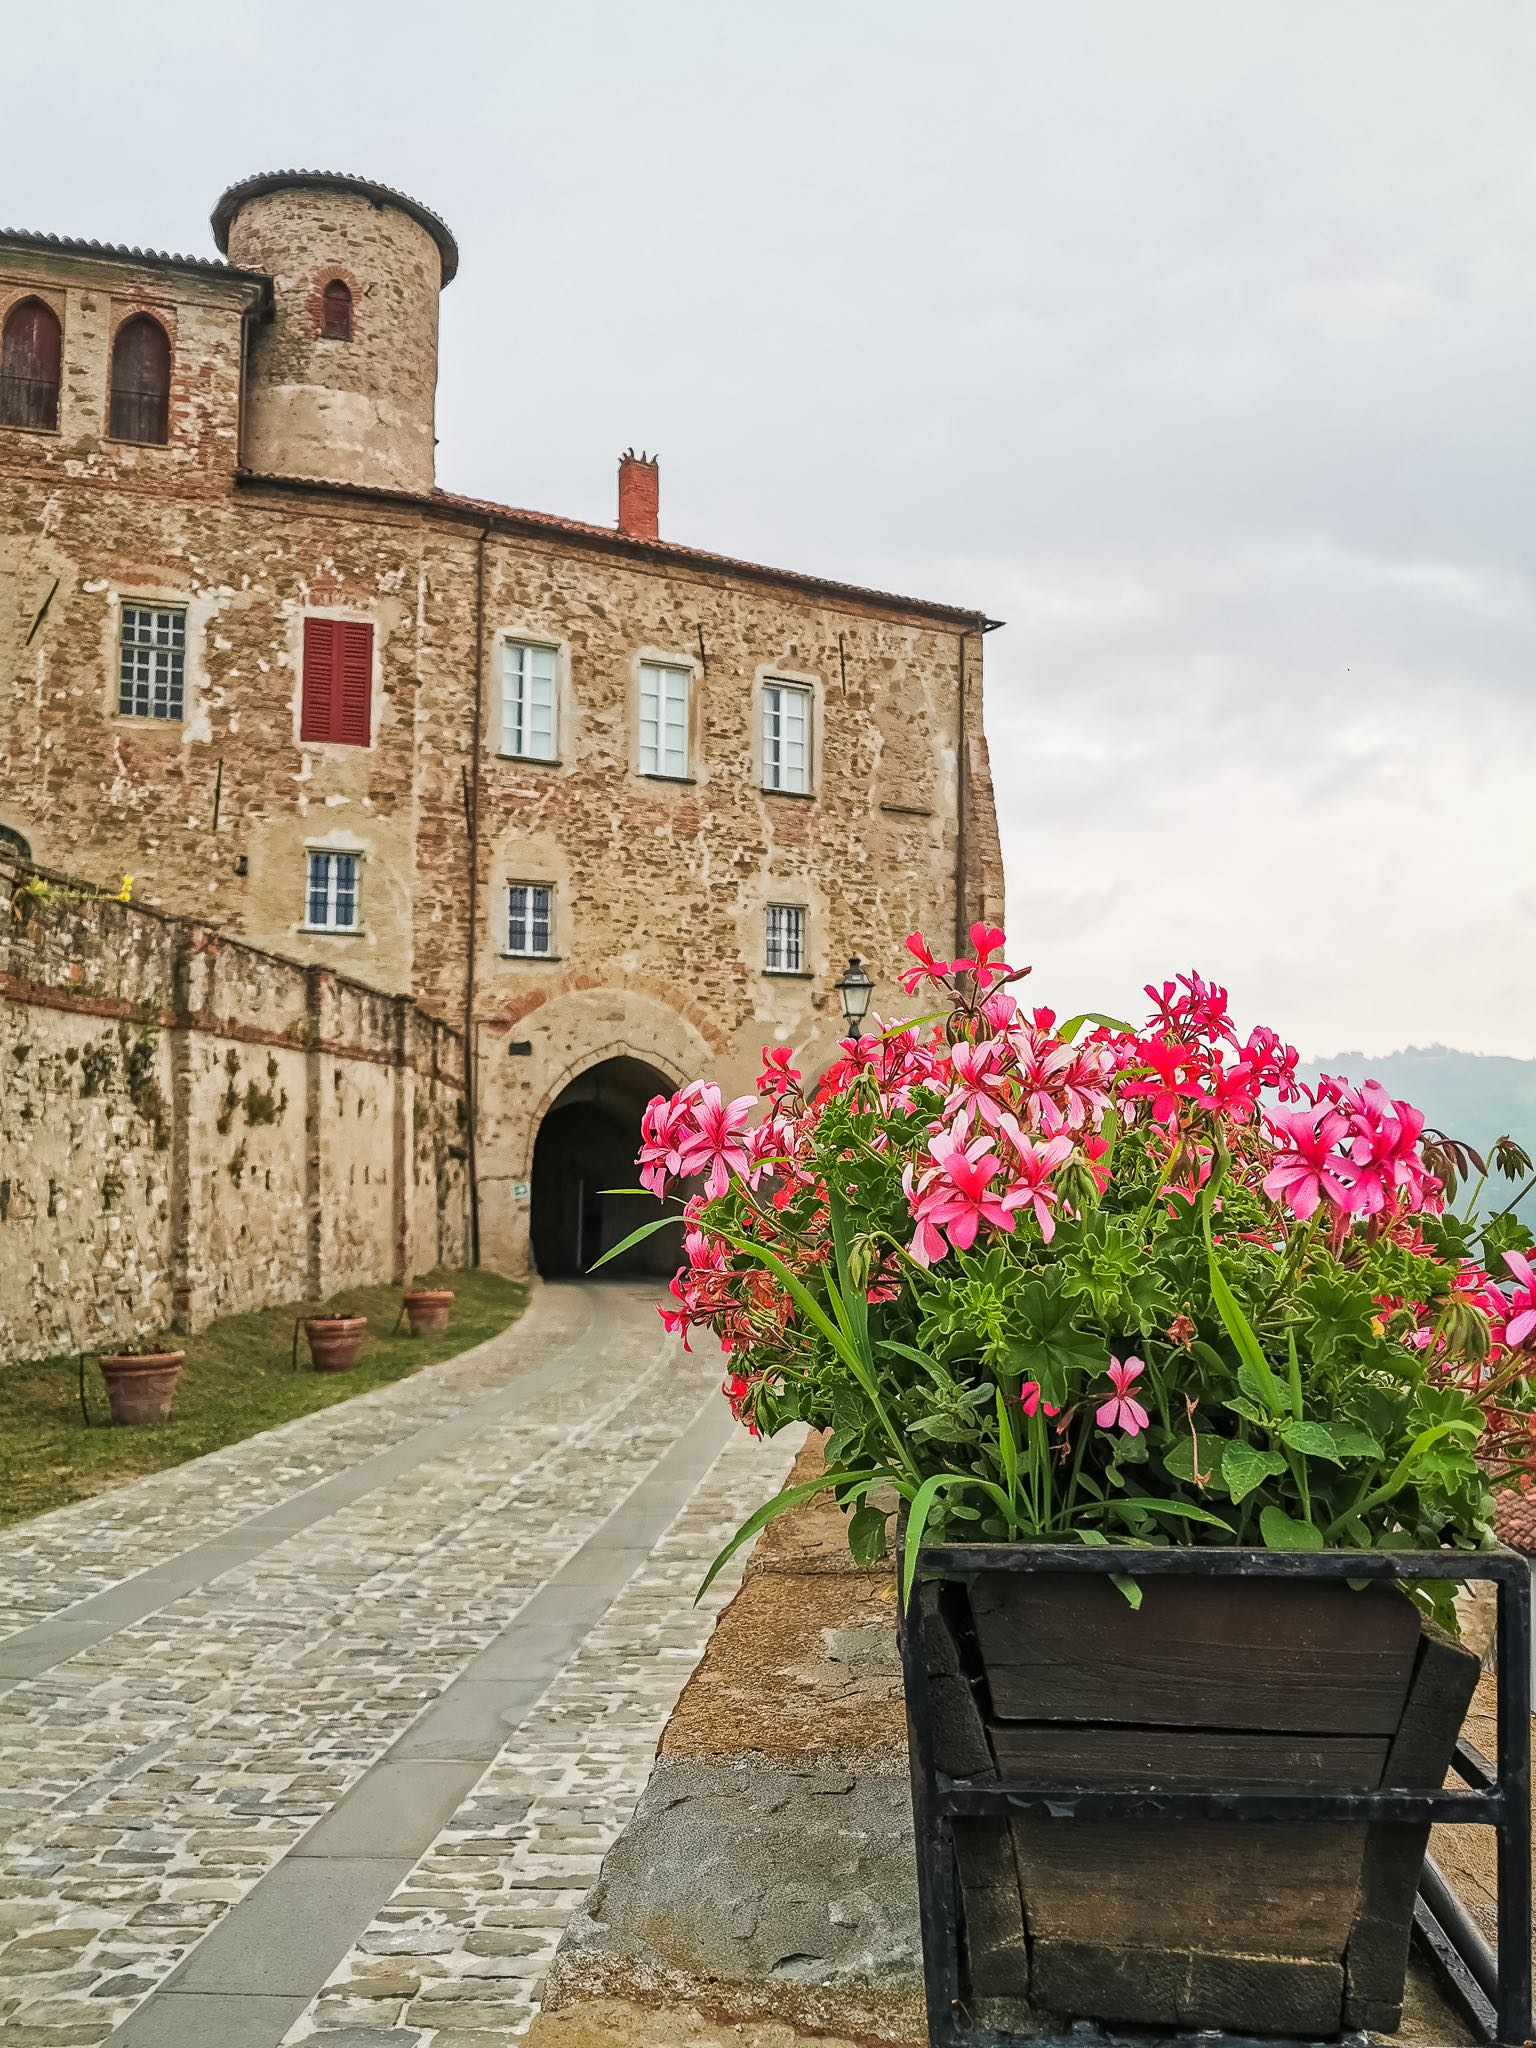 The castle of the Marquis Incisa in the village of Sale San Giovanni in Piedmont